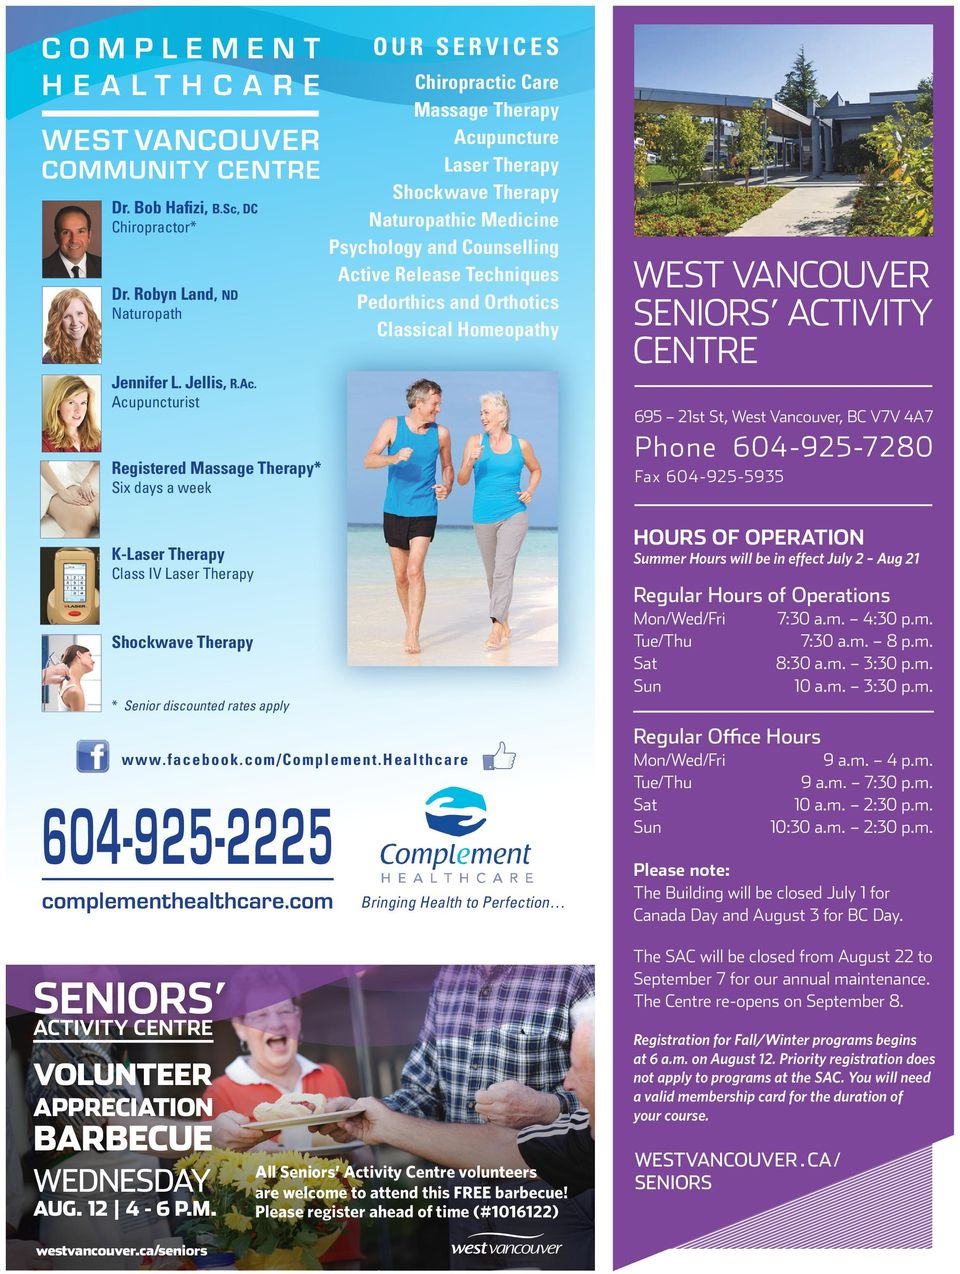 Pedorthics and Orthotics Classical Homeopathy west vancouver seniors activity centre Jennifer L. Jellis, R.Ac.